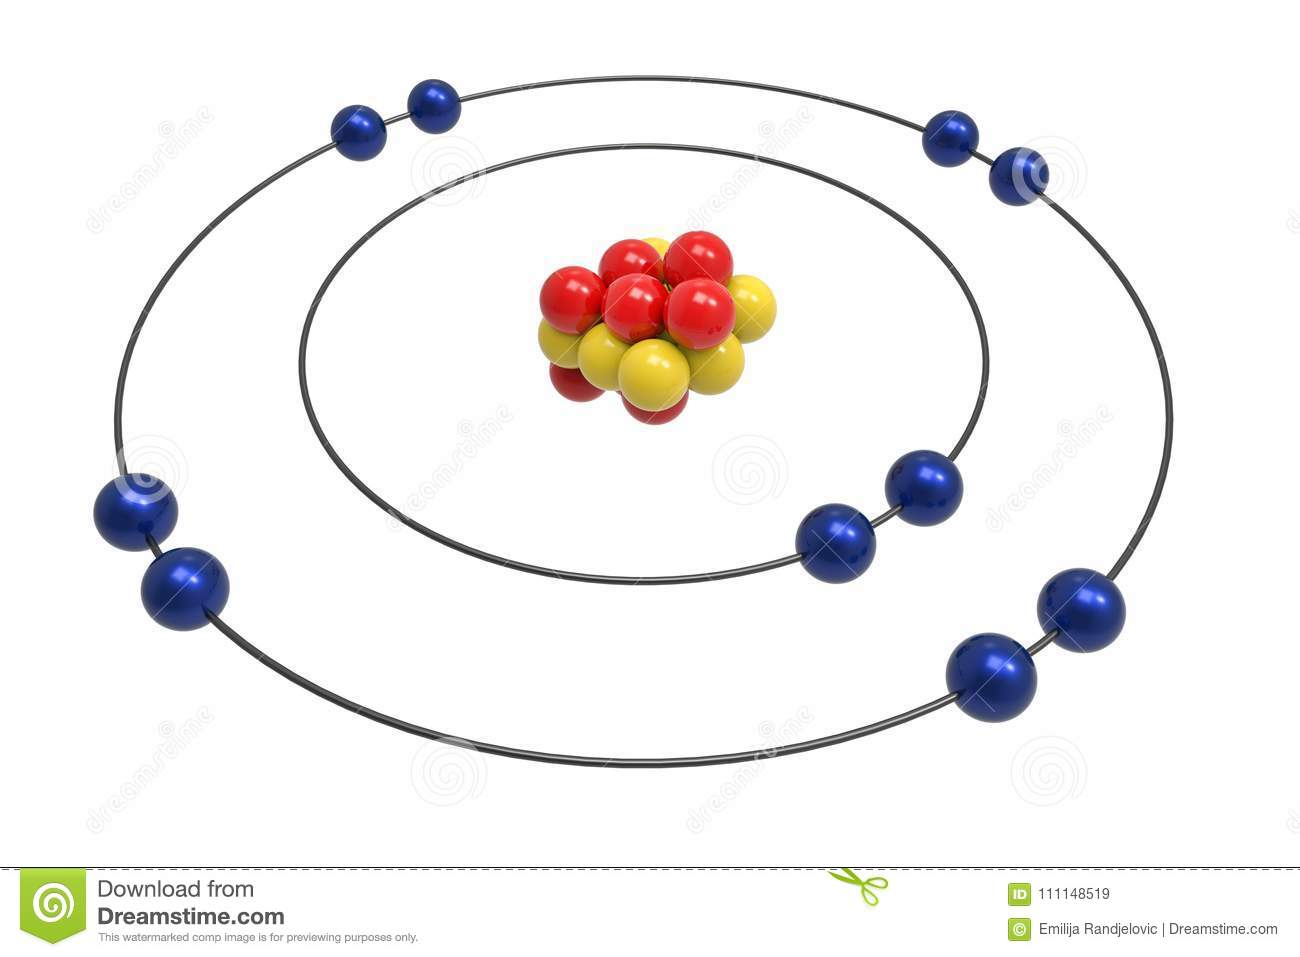 hight resolution of bohr model of neon atom with proton neutron and electron